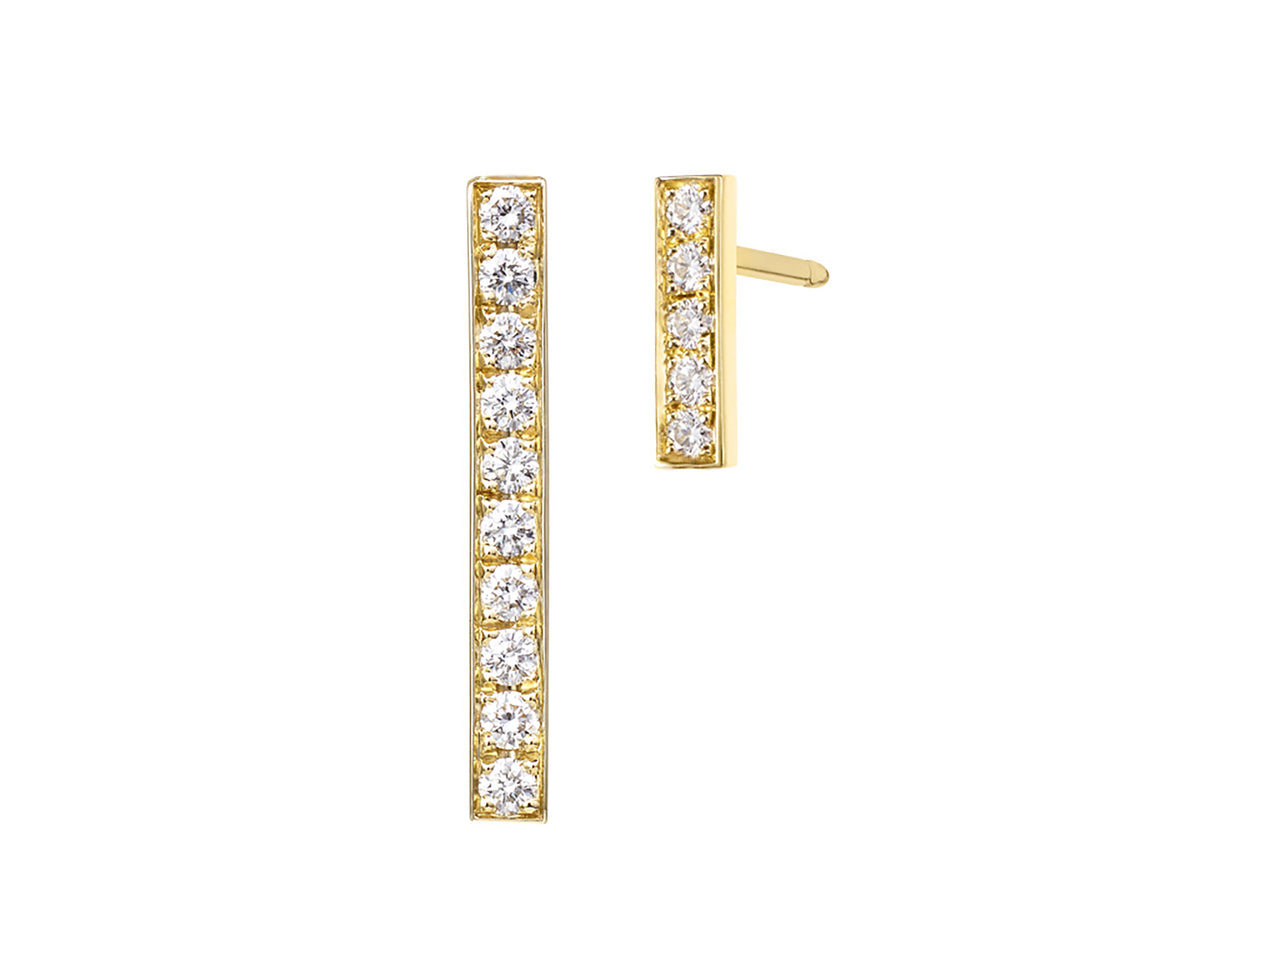 Mismatched Diamond Bar Earrings